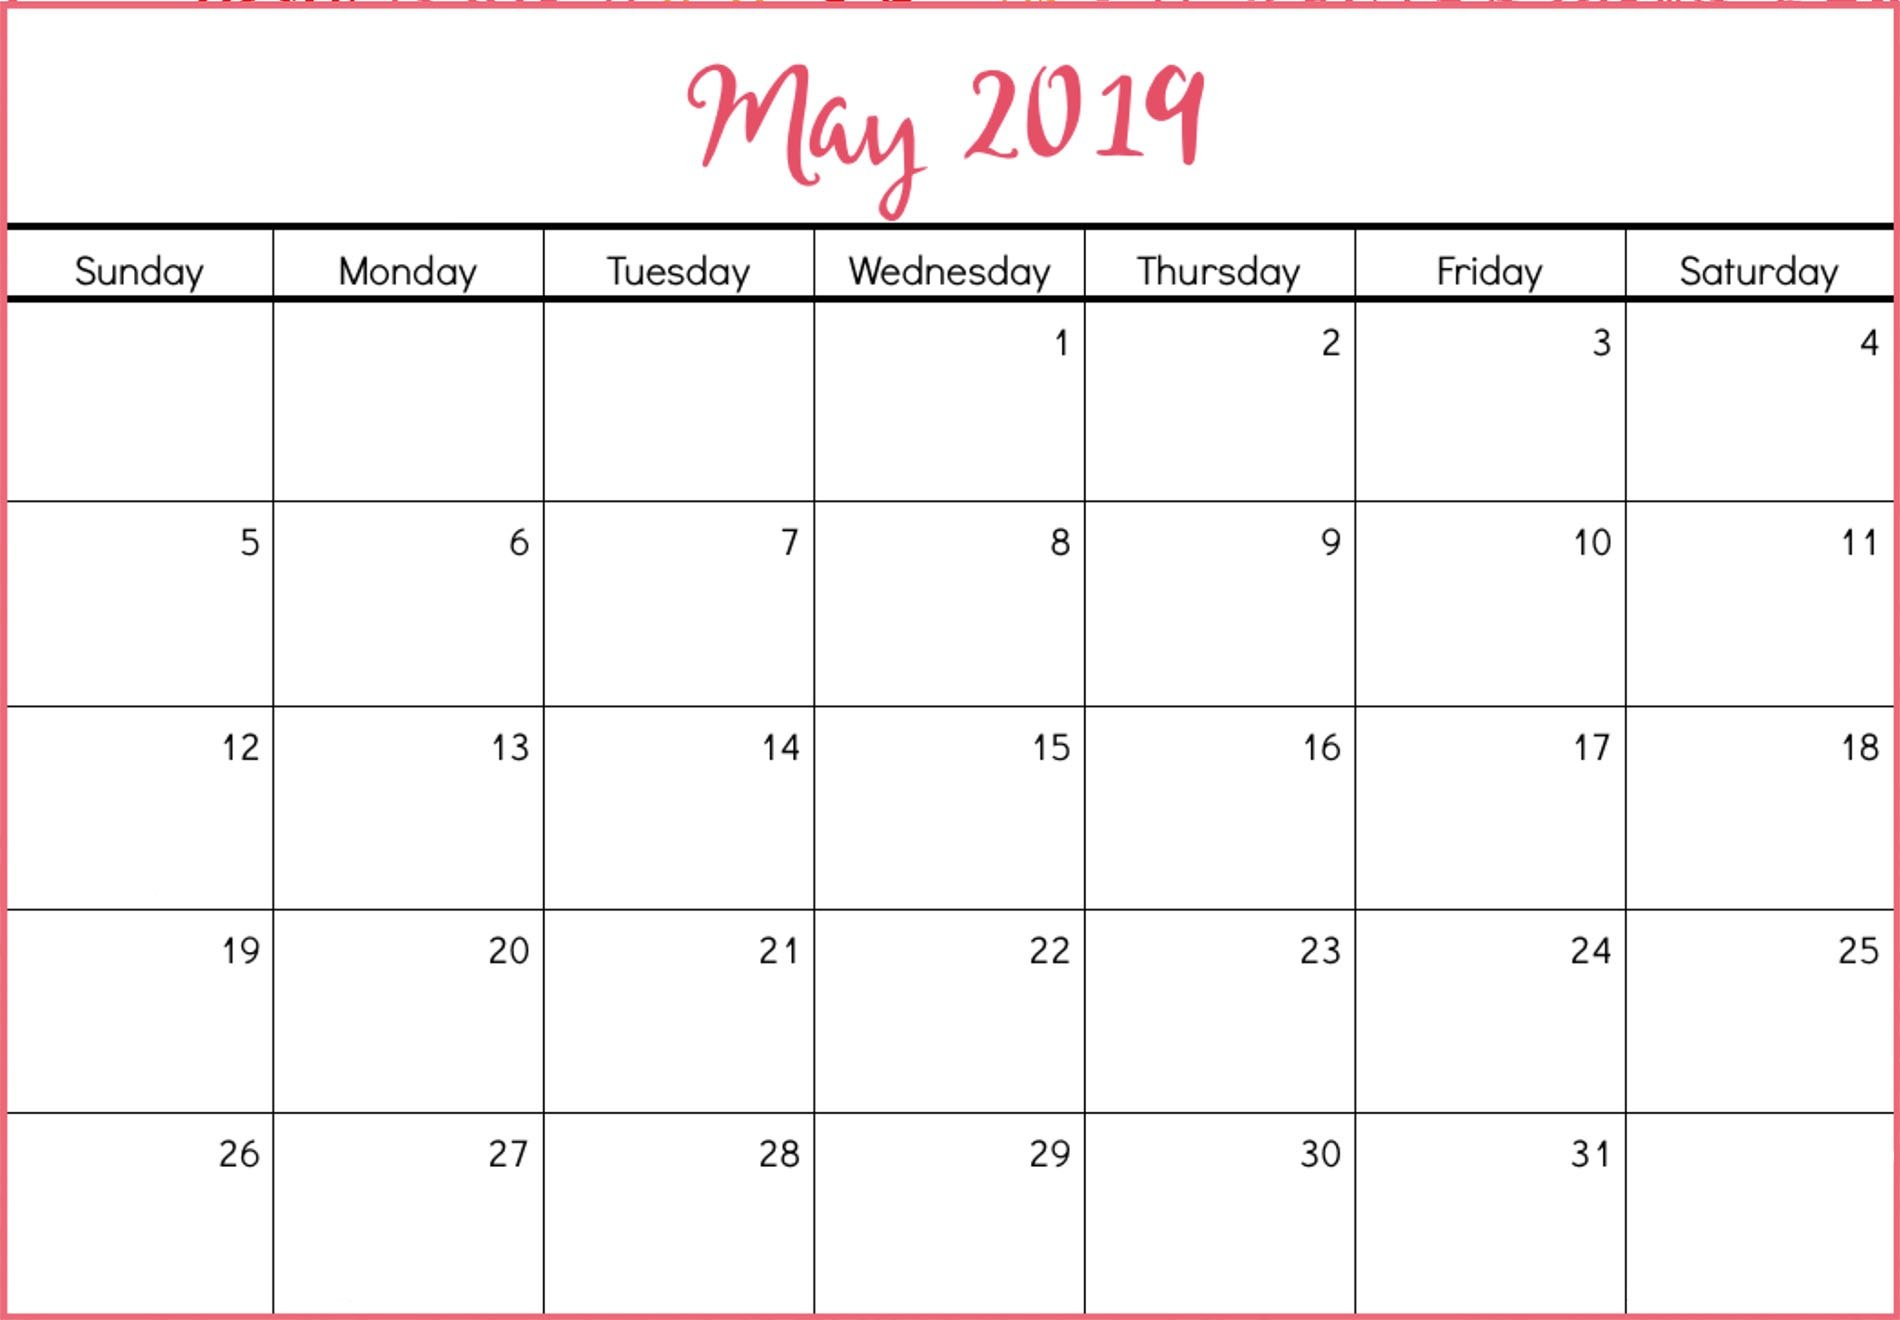 Printable May 2019 Calendar Free (8) | Download 2019 Calendar May 8 2019 Calendar